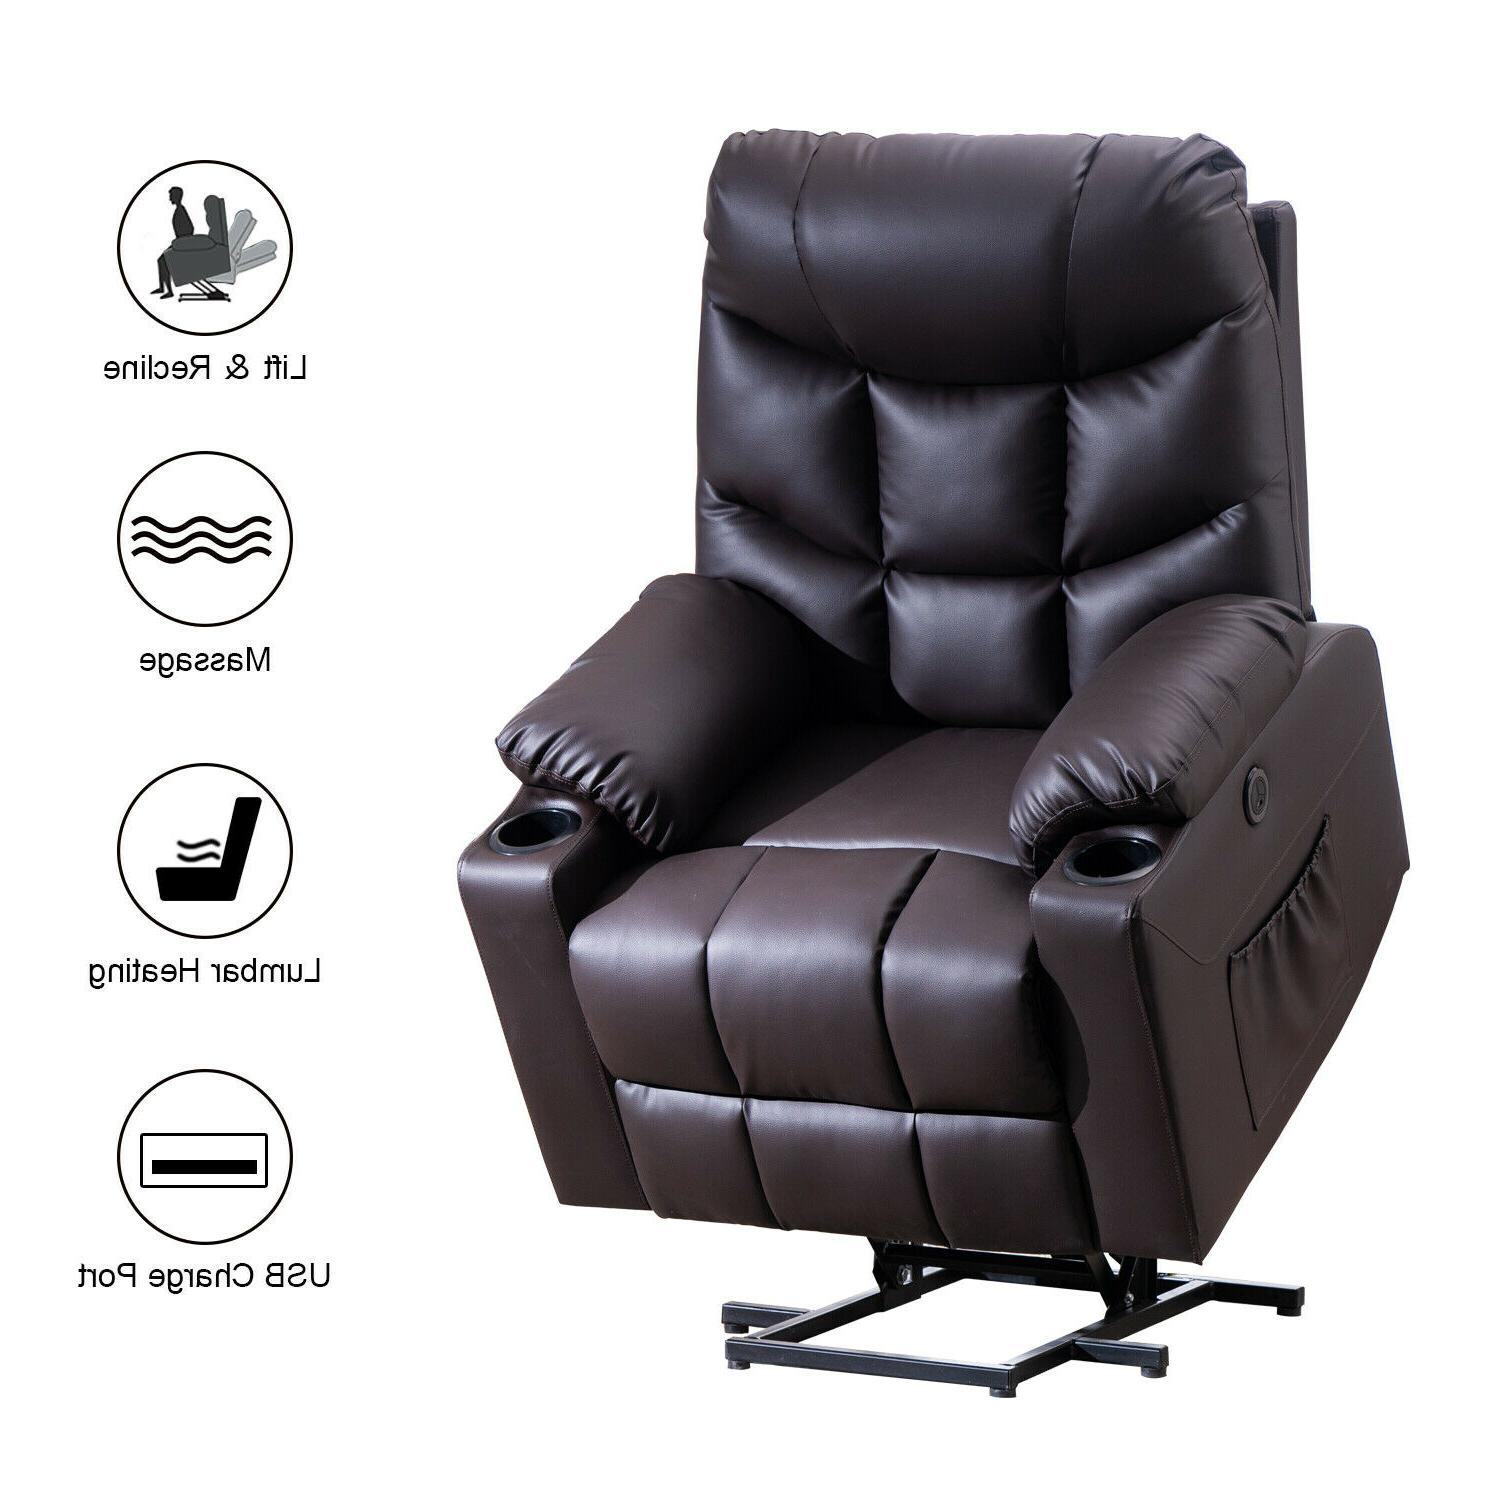 electric power lift recliner chair heated 8